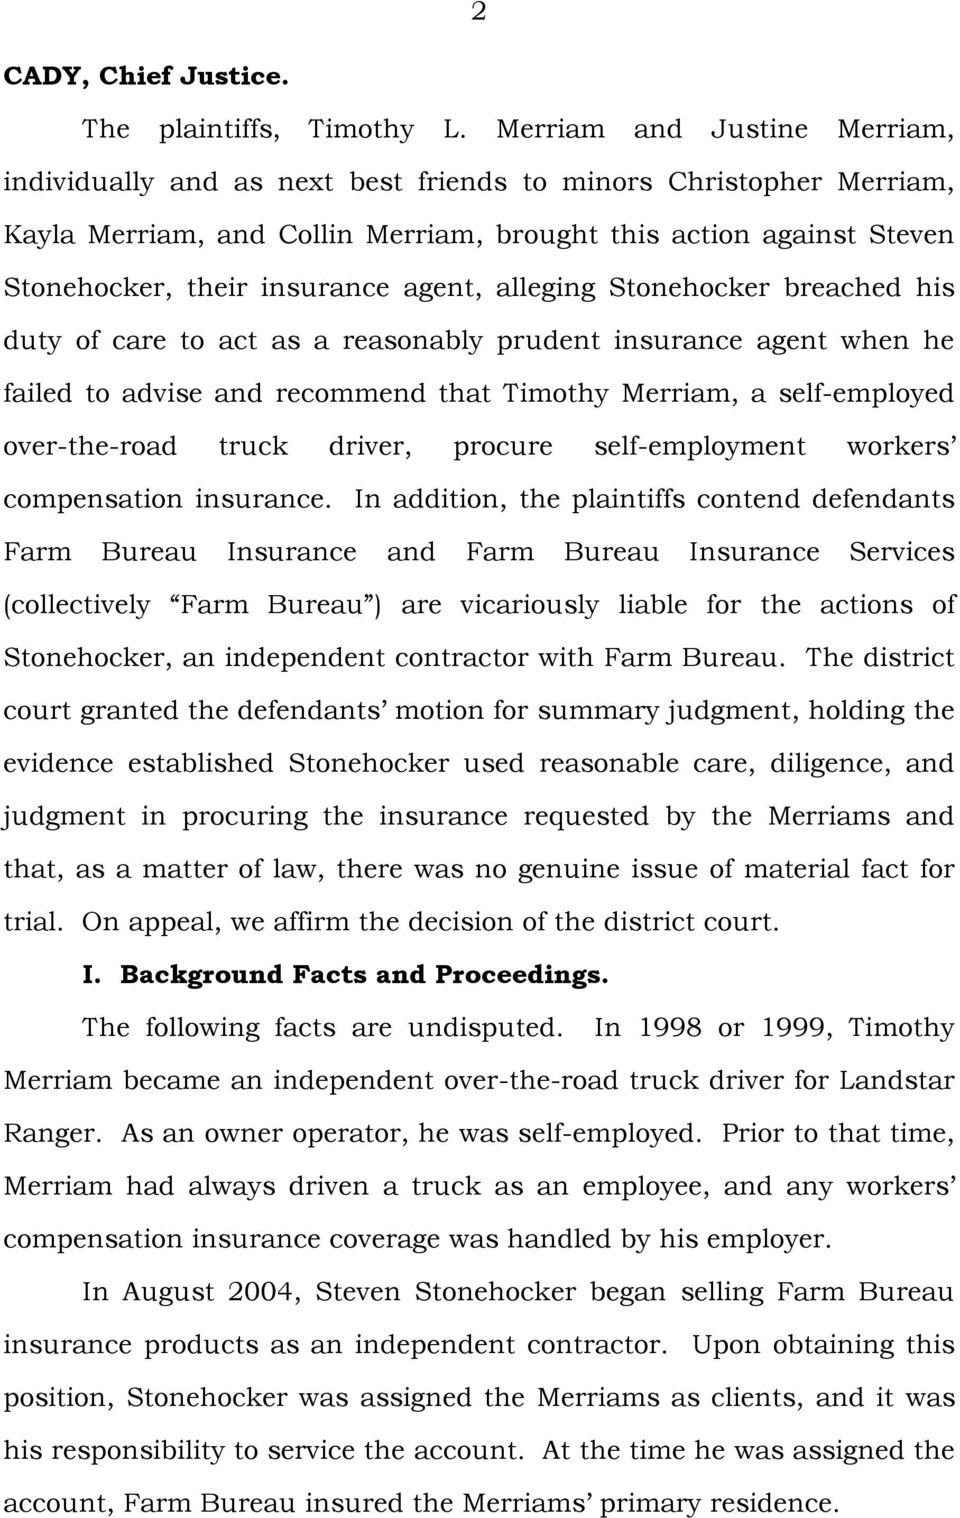 agent, alleging Stonehocker breached his duty of care to act as a reasonably prudent insurance agent when he failed to advise and recommend that Timothy Merriam, a self-employed over-the-road truck